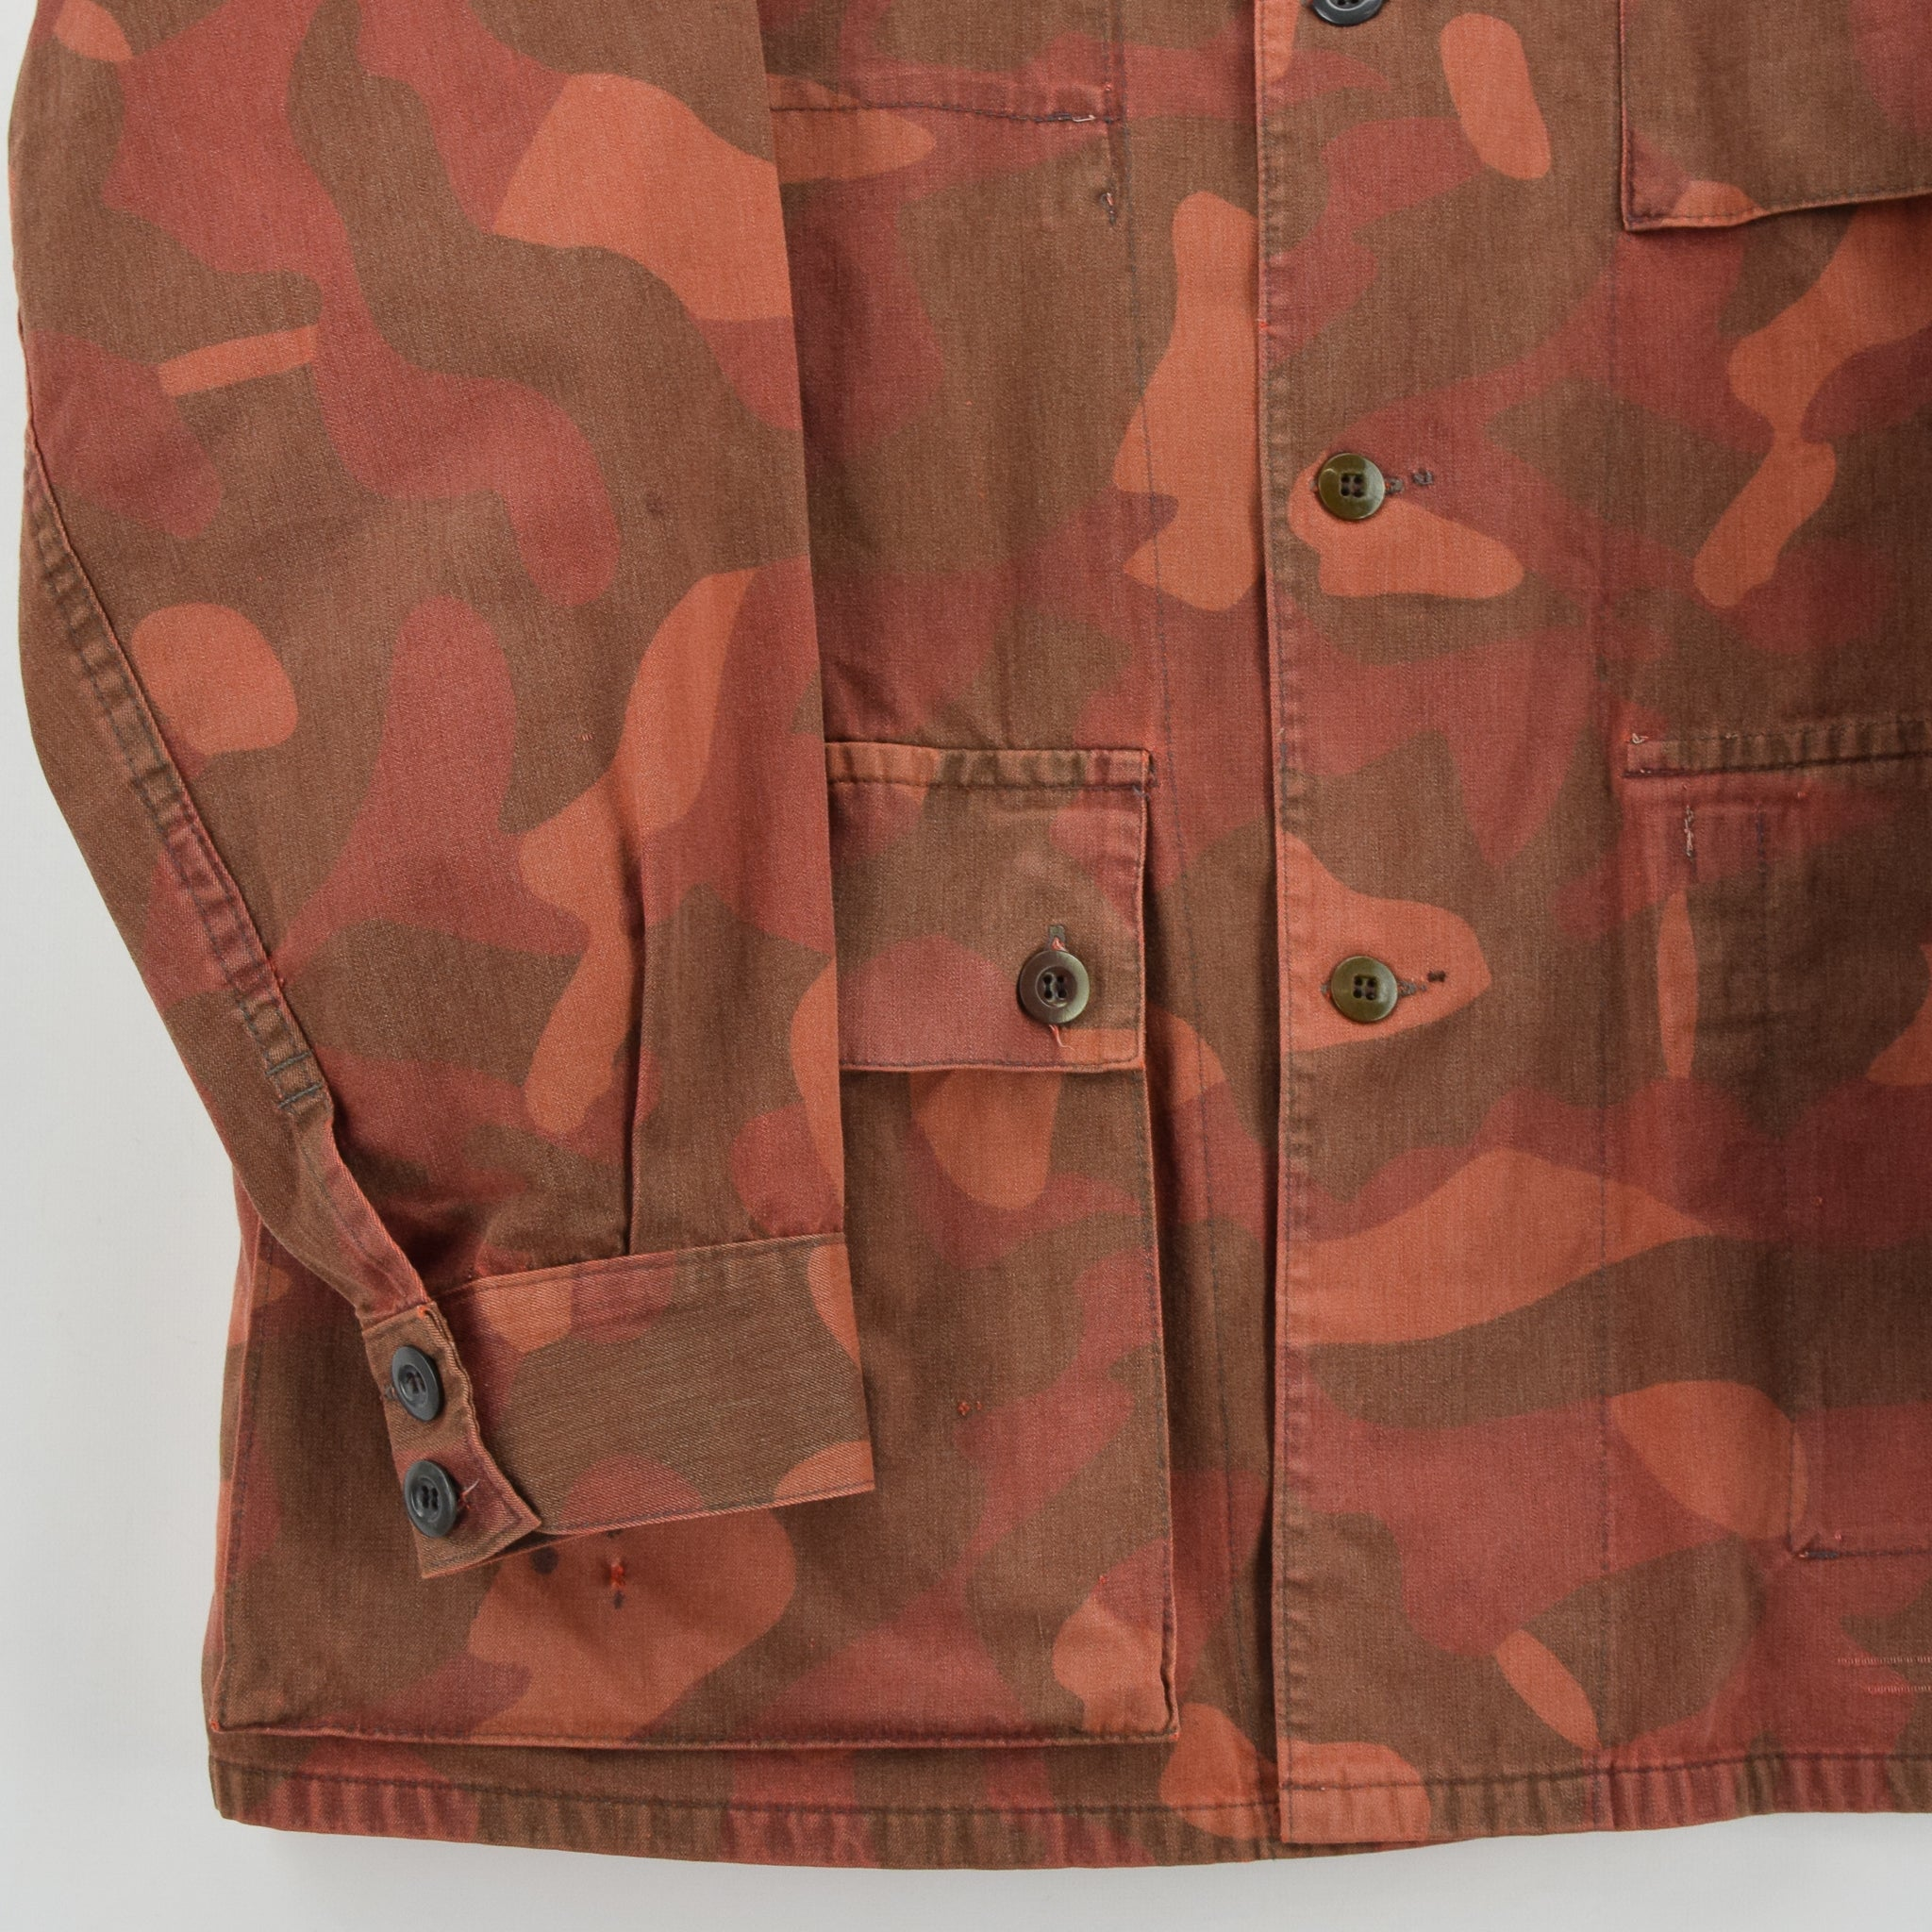 Vintage 80s Military Finnish Army Orange Overdyed Camo Mountain Field Jacket L front hem